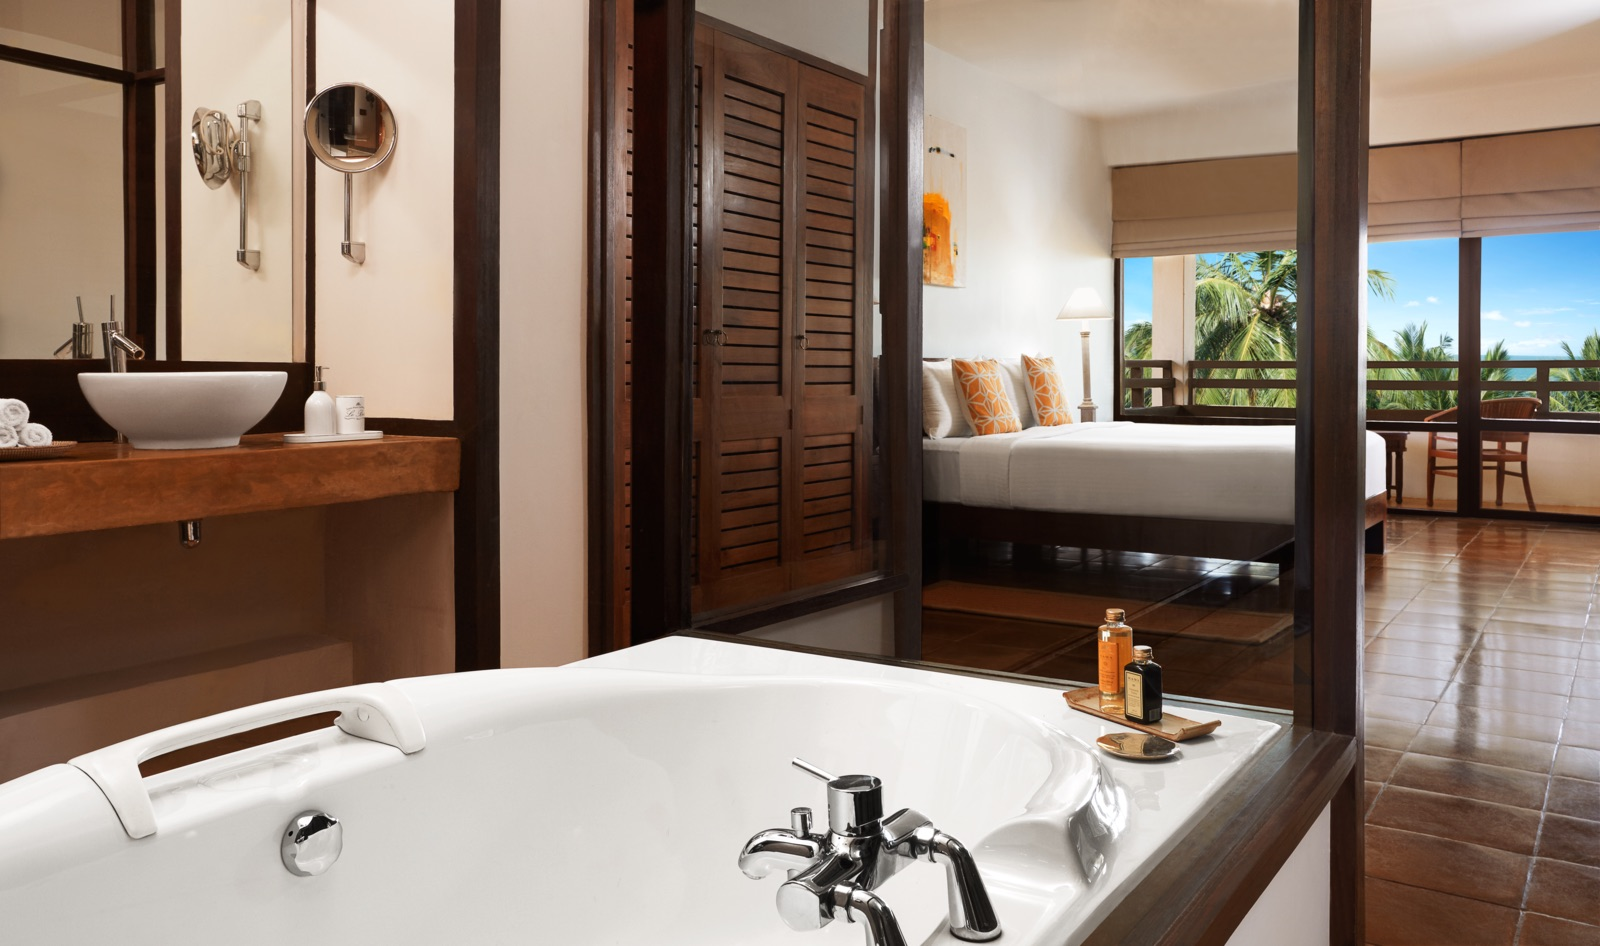 invite-to-paradise-sri-lanka-specialists-experts-travel-agent-tour-operator-jetwing-beach-hotel-negombo-deluxe-bath.jpg